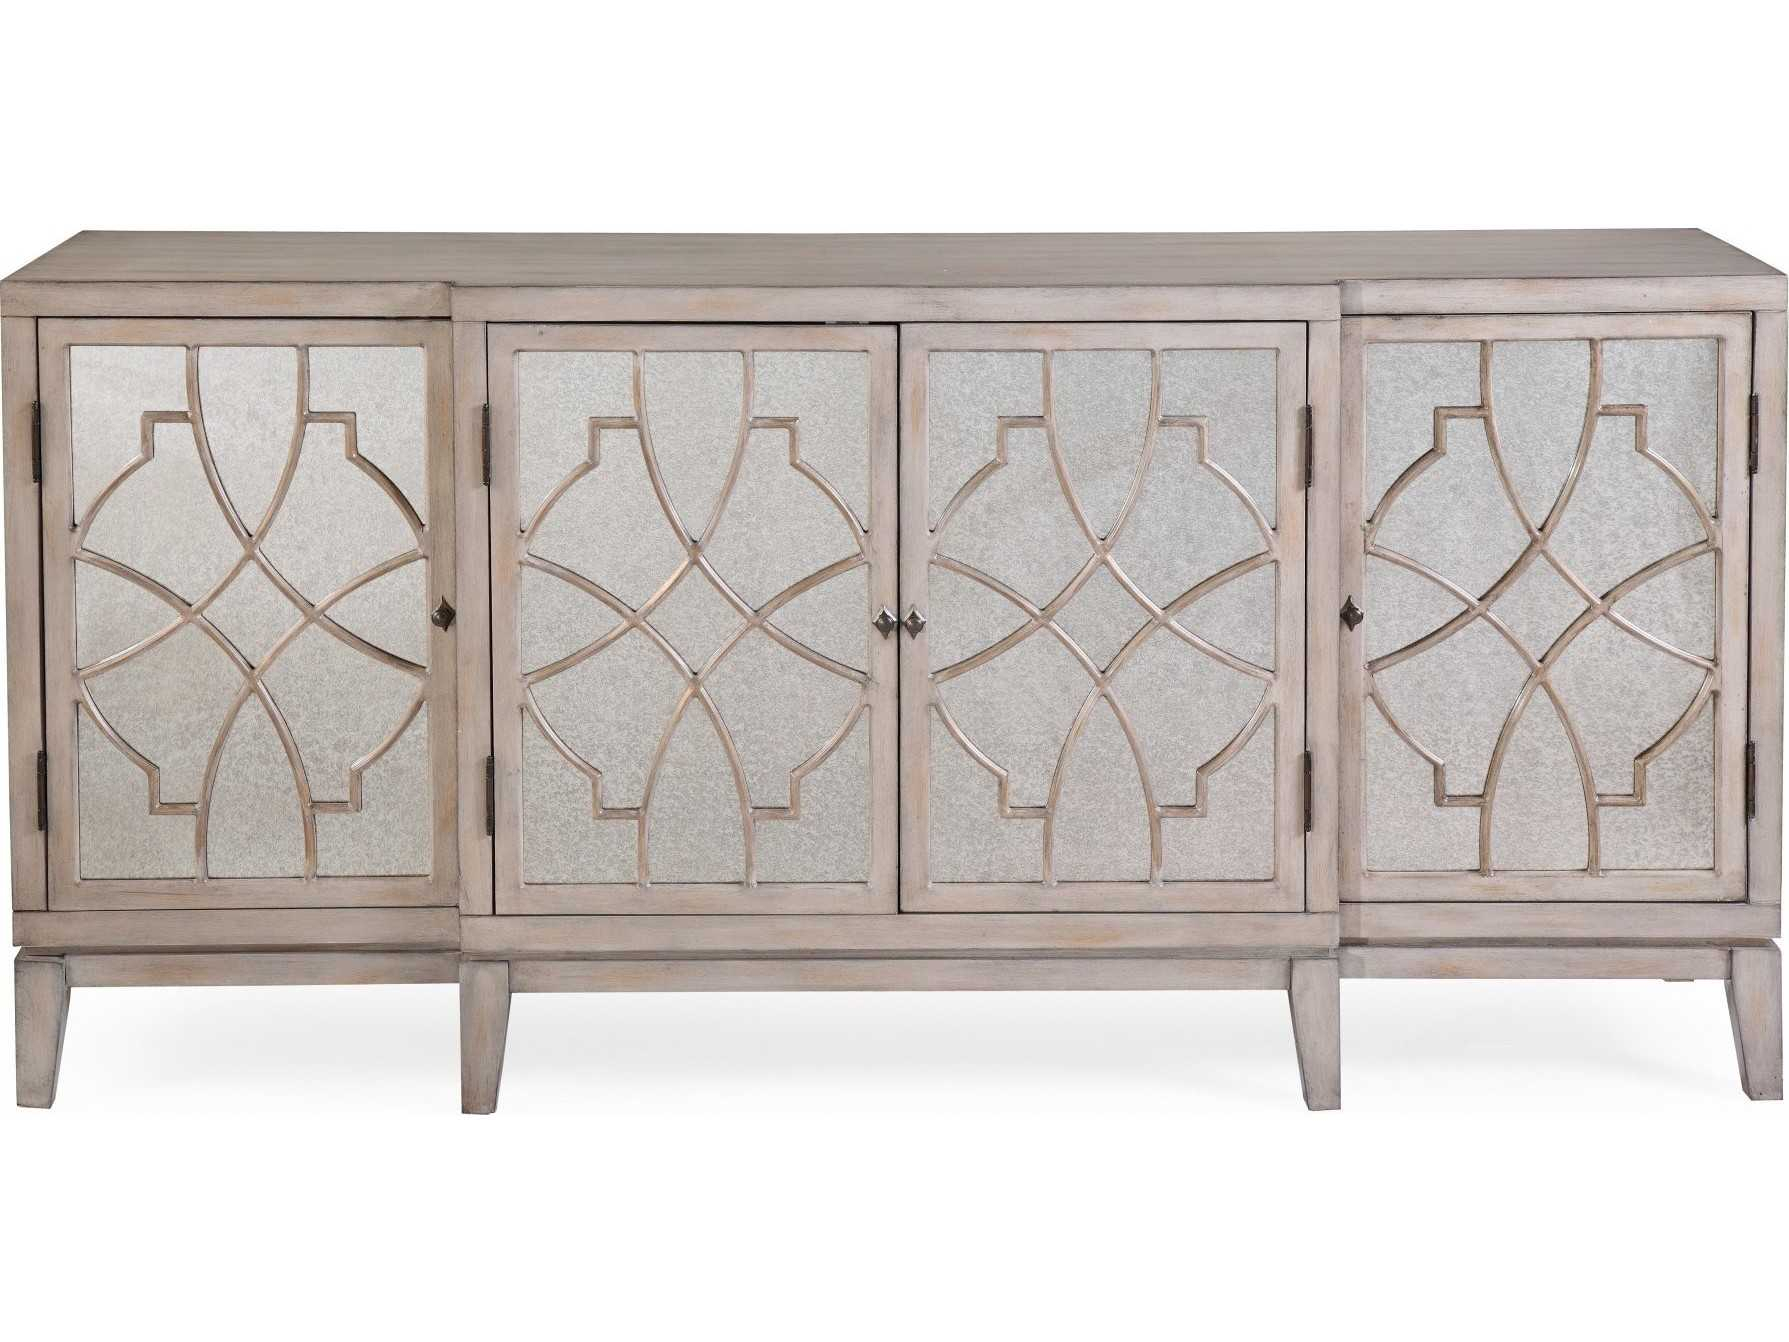 Bassett Mirror Pan Pacific Portia 72'' X 19'' Server   Ba2502dr576ec With Regard To Balboa Carved Console Tables (View 23 of 30)